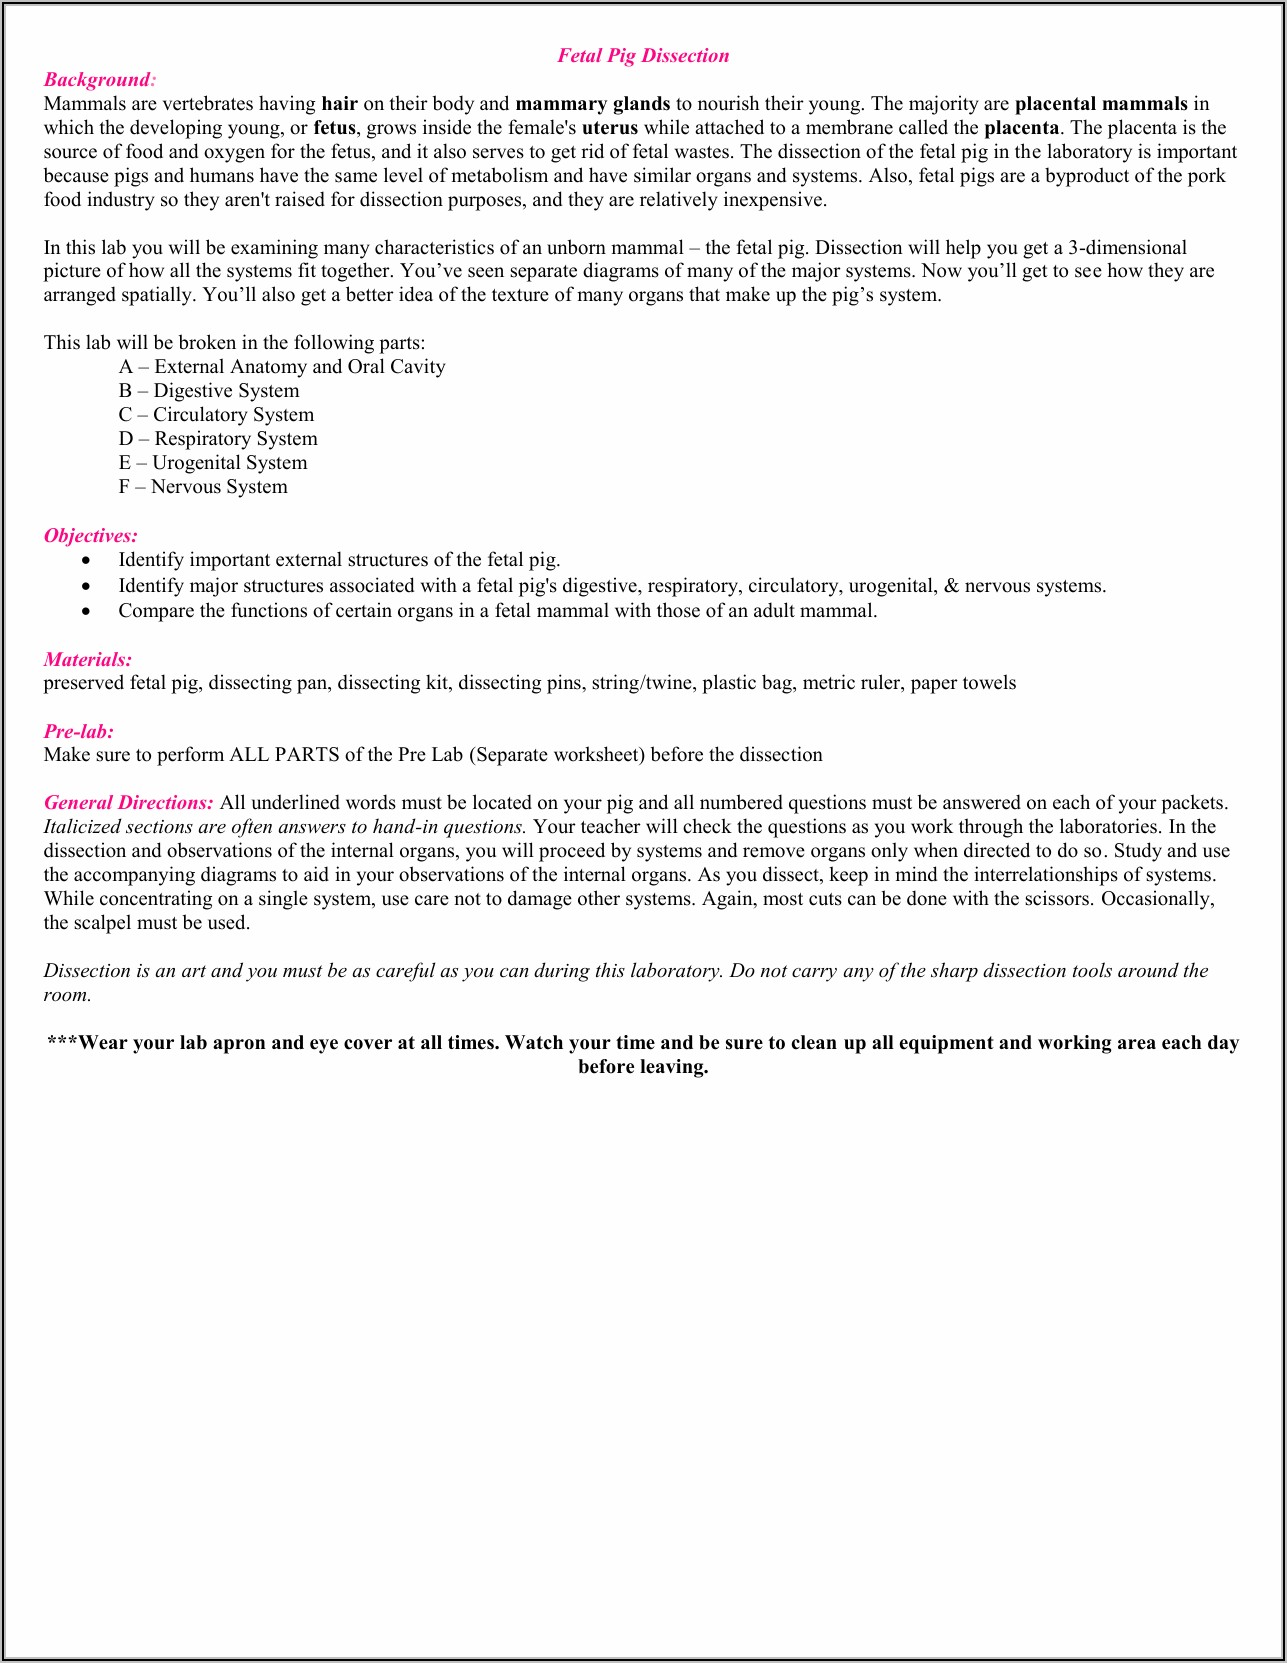 Fetal Pig Dissection Lab Worksheet Answers